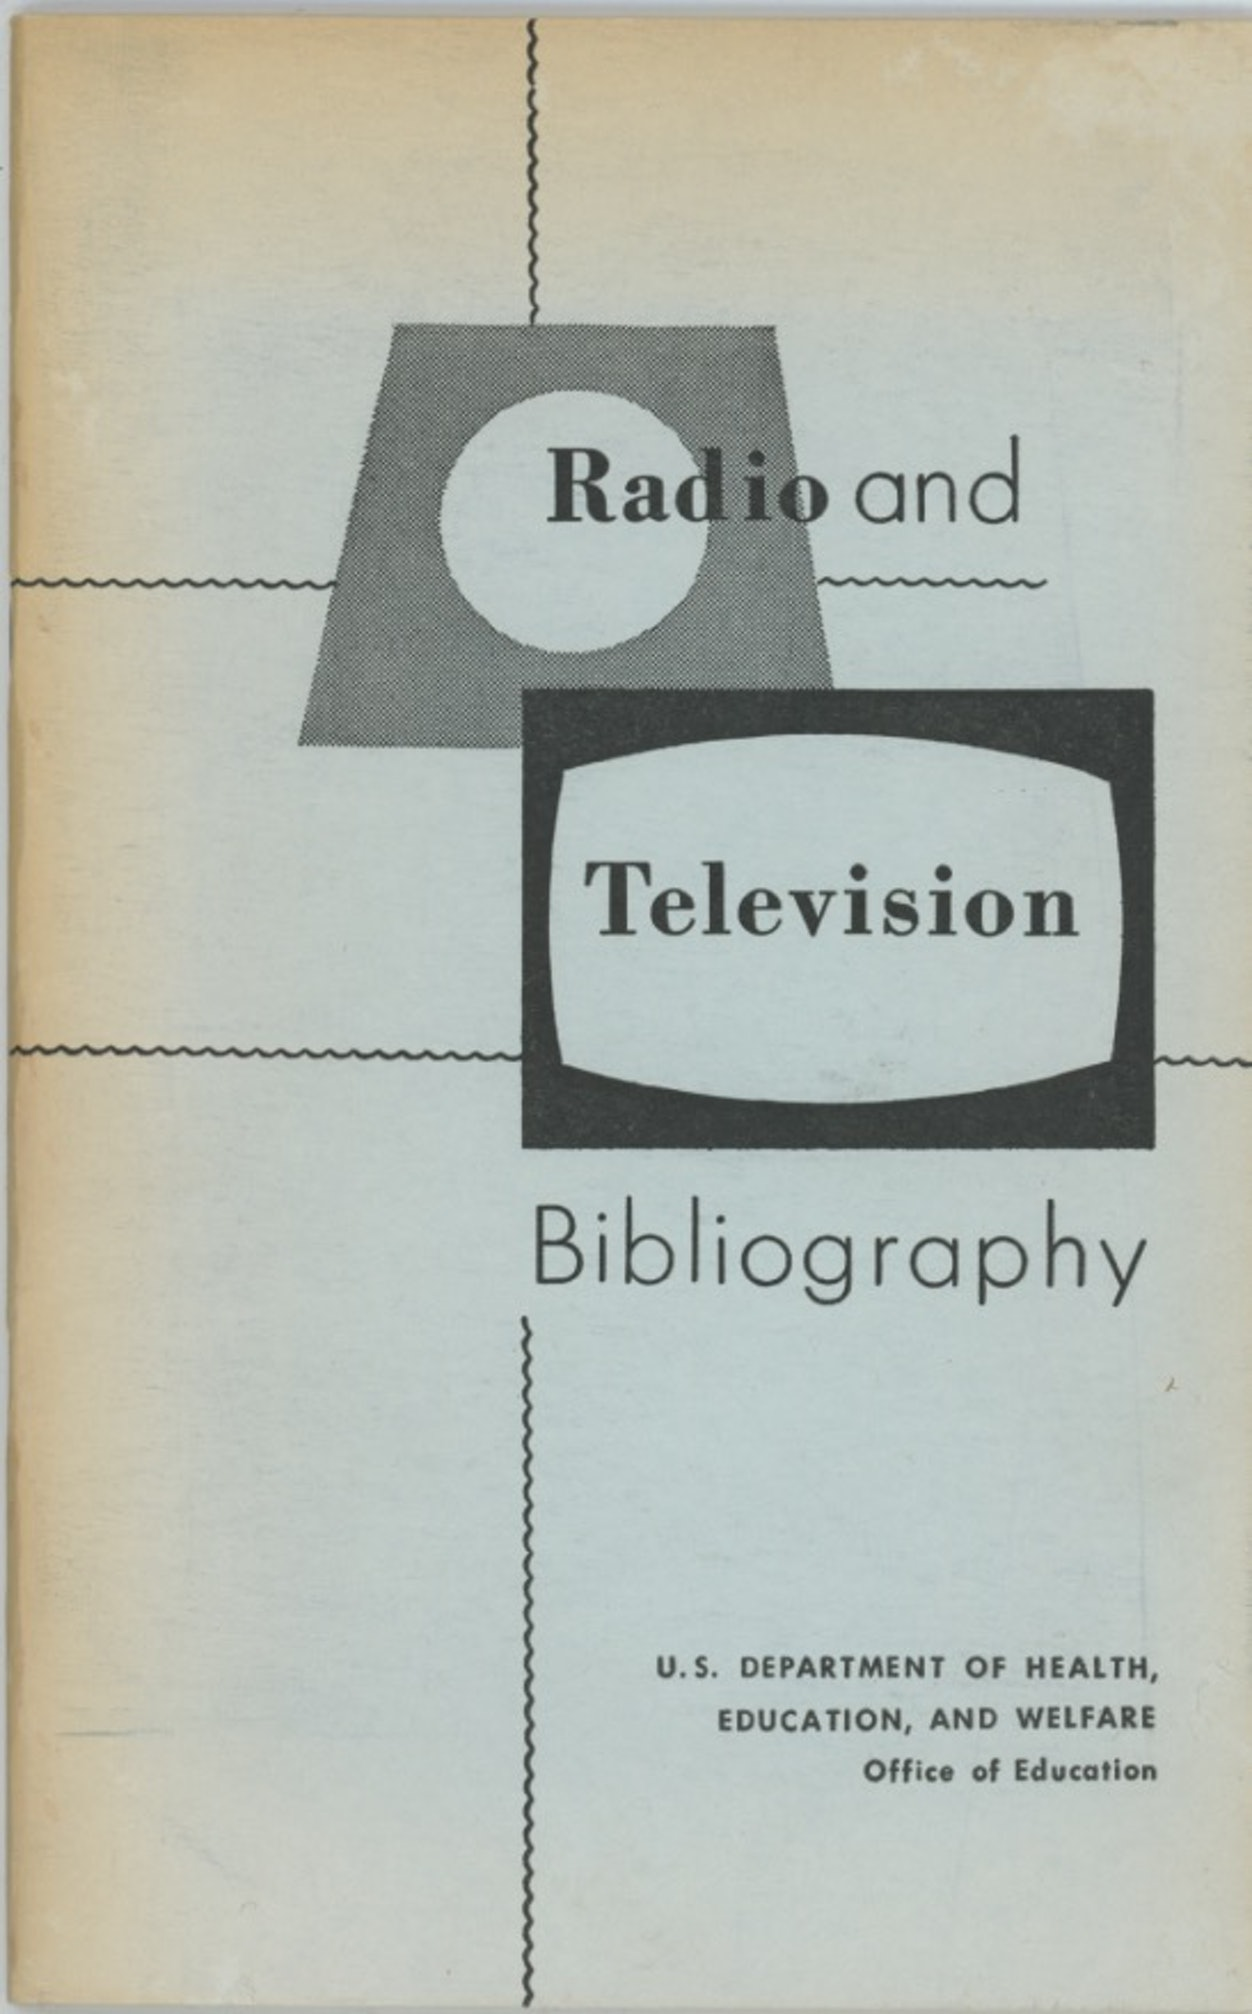 Radio and Television Bibliography